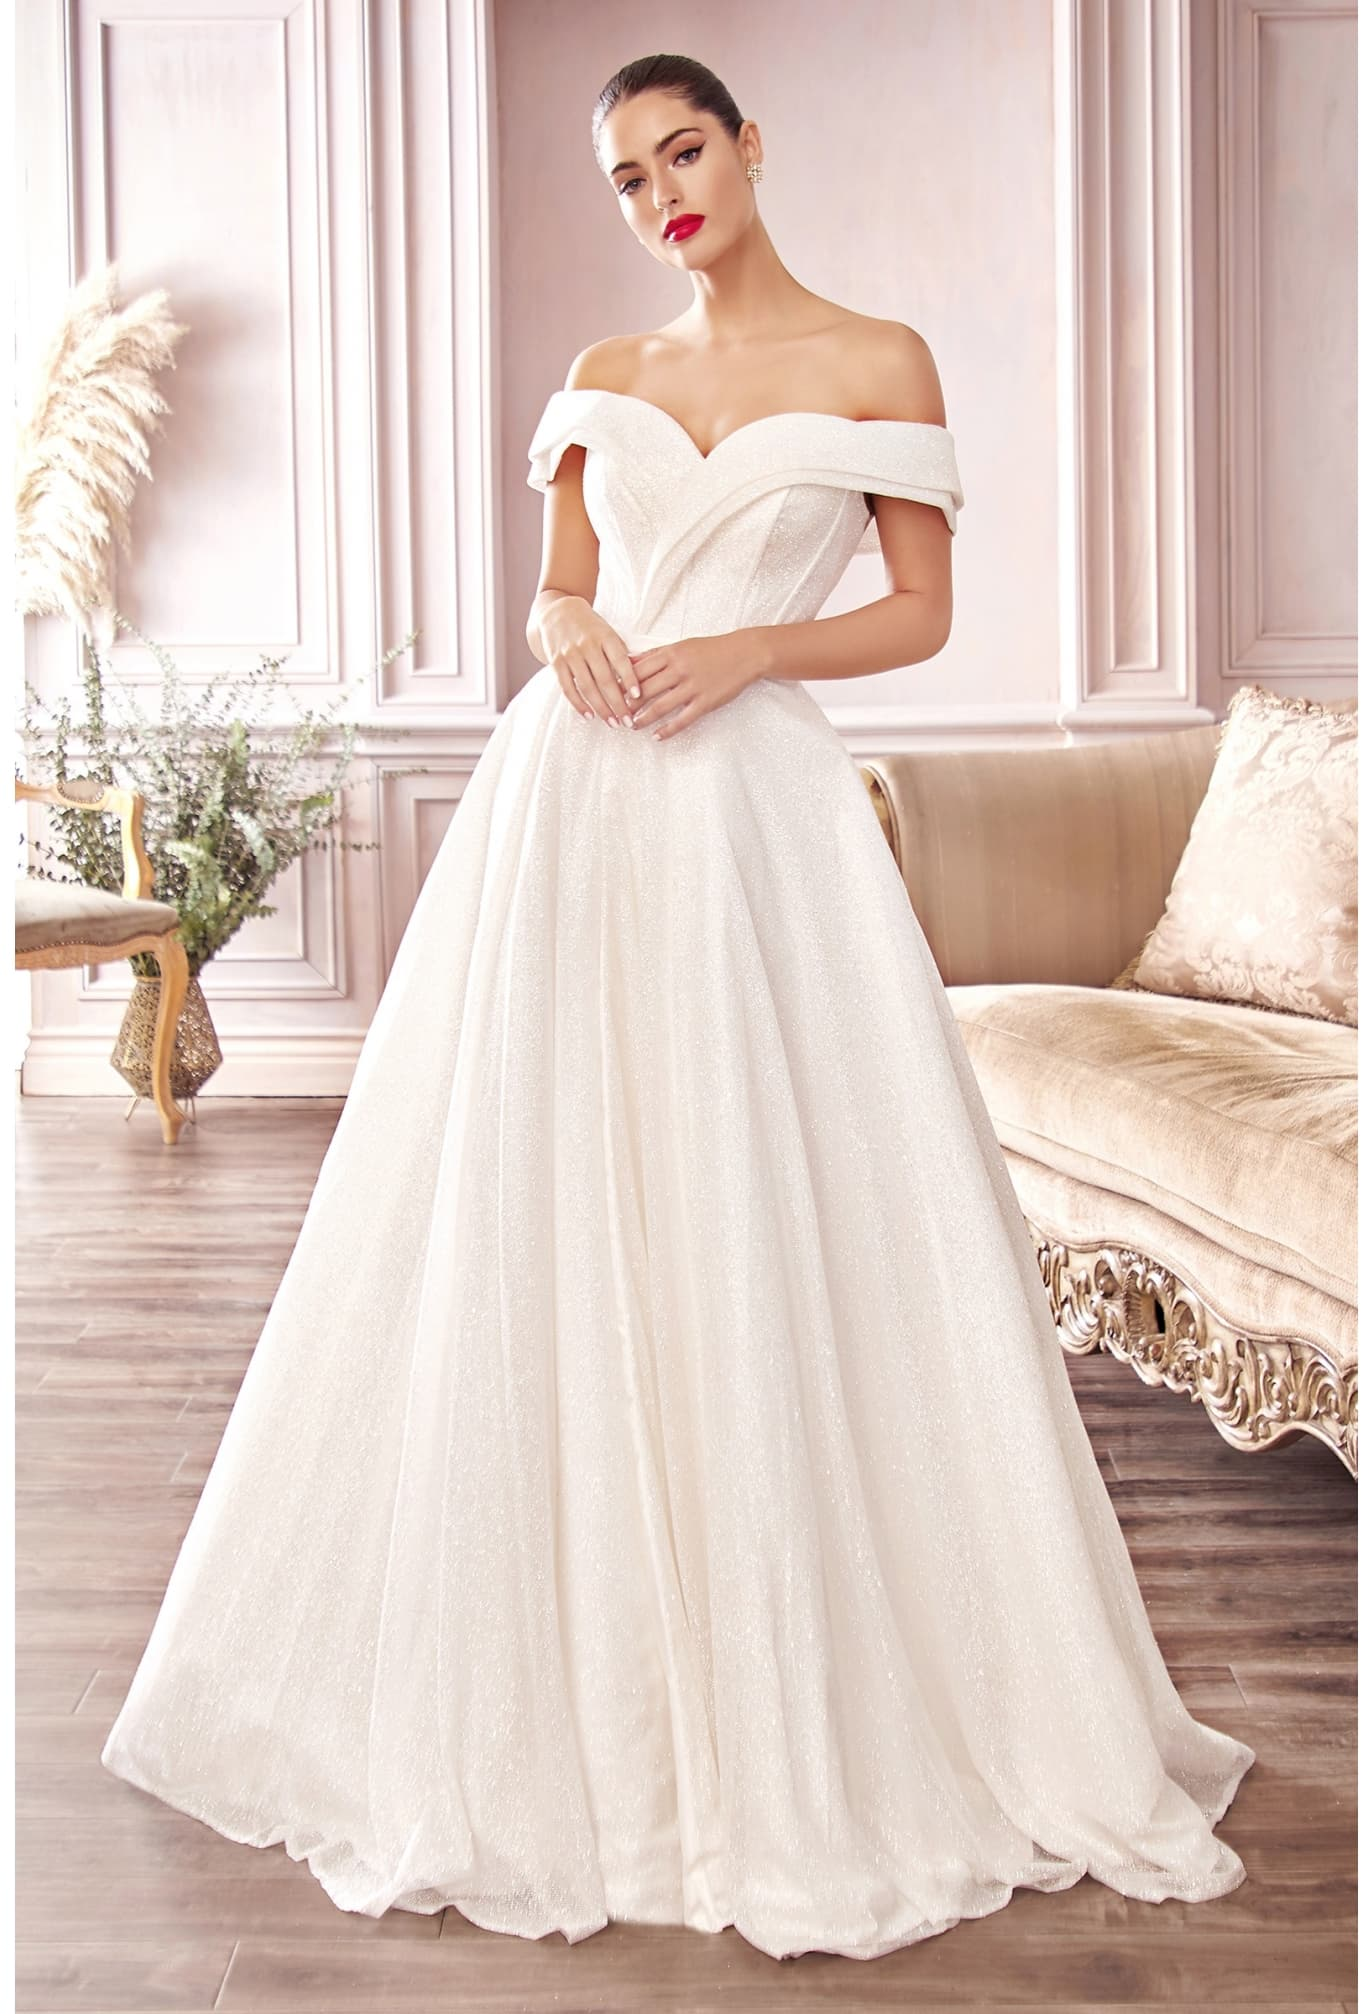 CD214W GLITTER OFF THE SHOULDER BALL GOWN Designed into a strapless silhouette with a fitted bodice and floor sweeping A-line skirt, this gorgeously crafted glitter gown will have you looking and feeling like royalty on your special day.